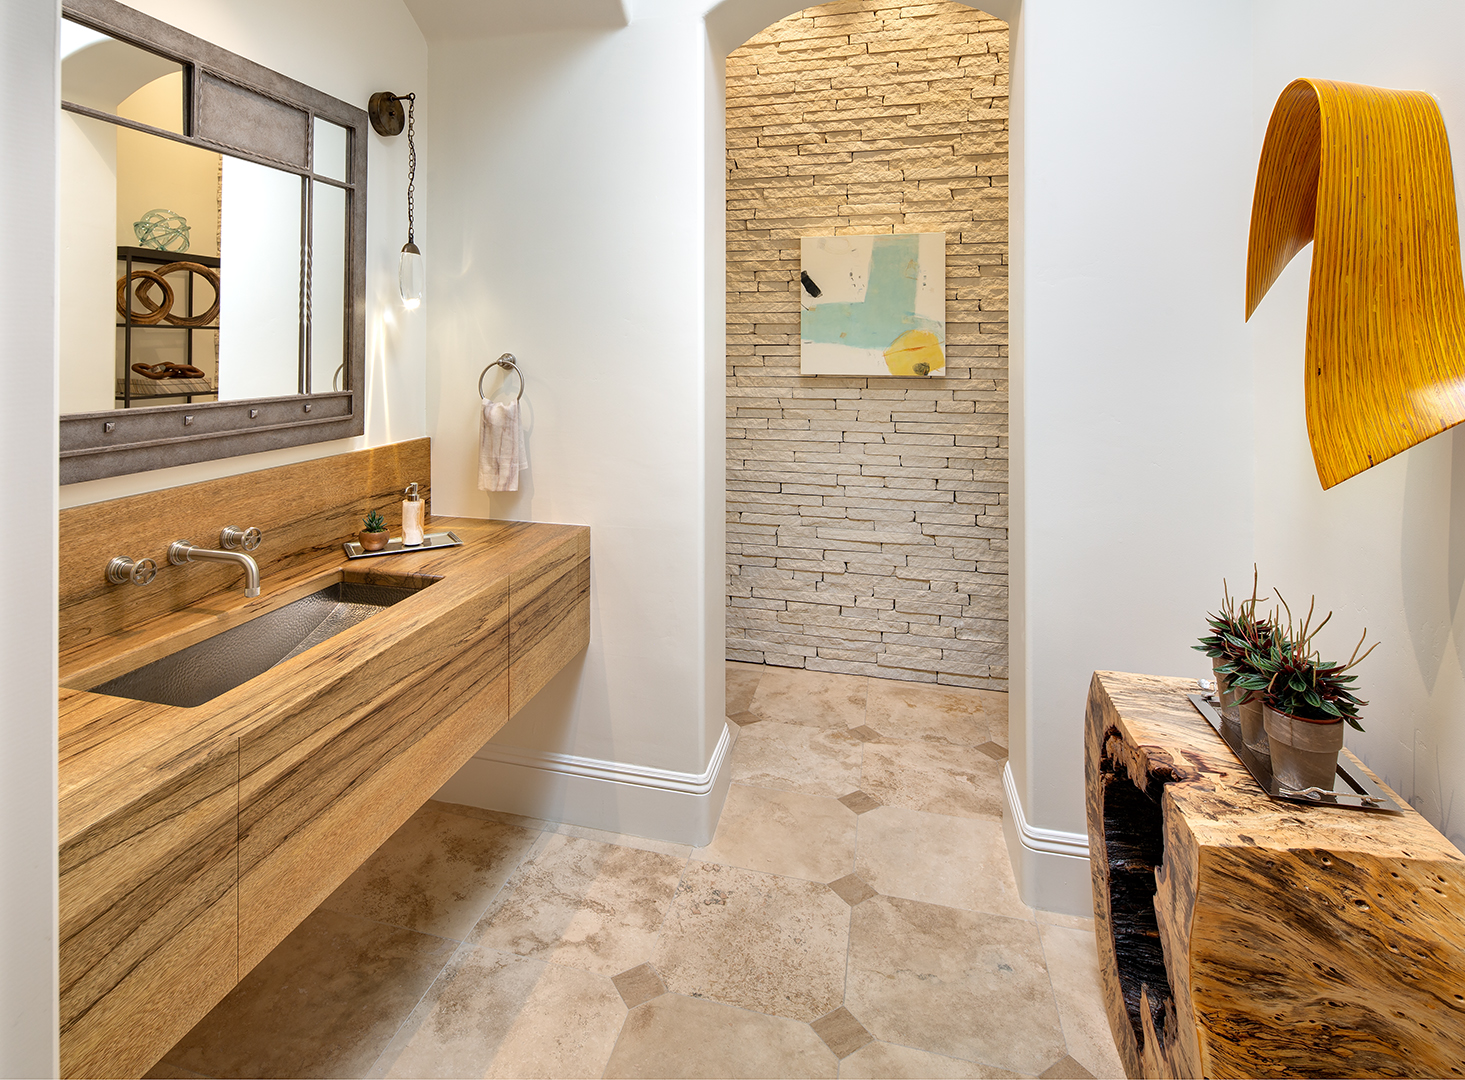 Custom Solid Wood Countertops for Baths by Grothouse